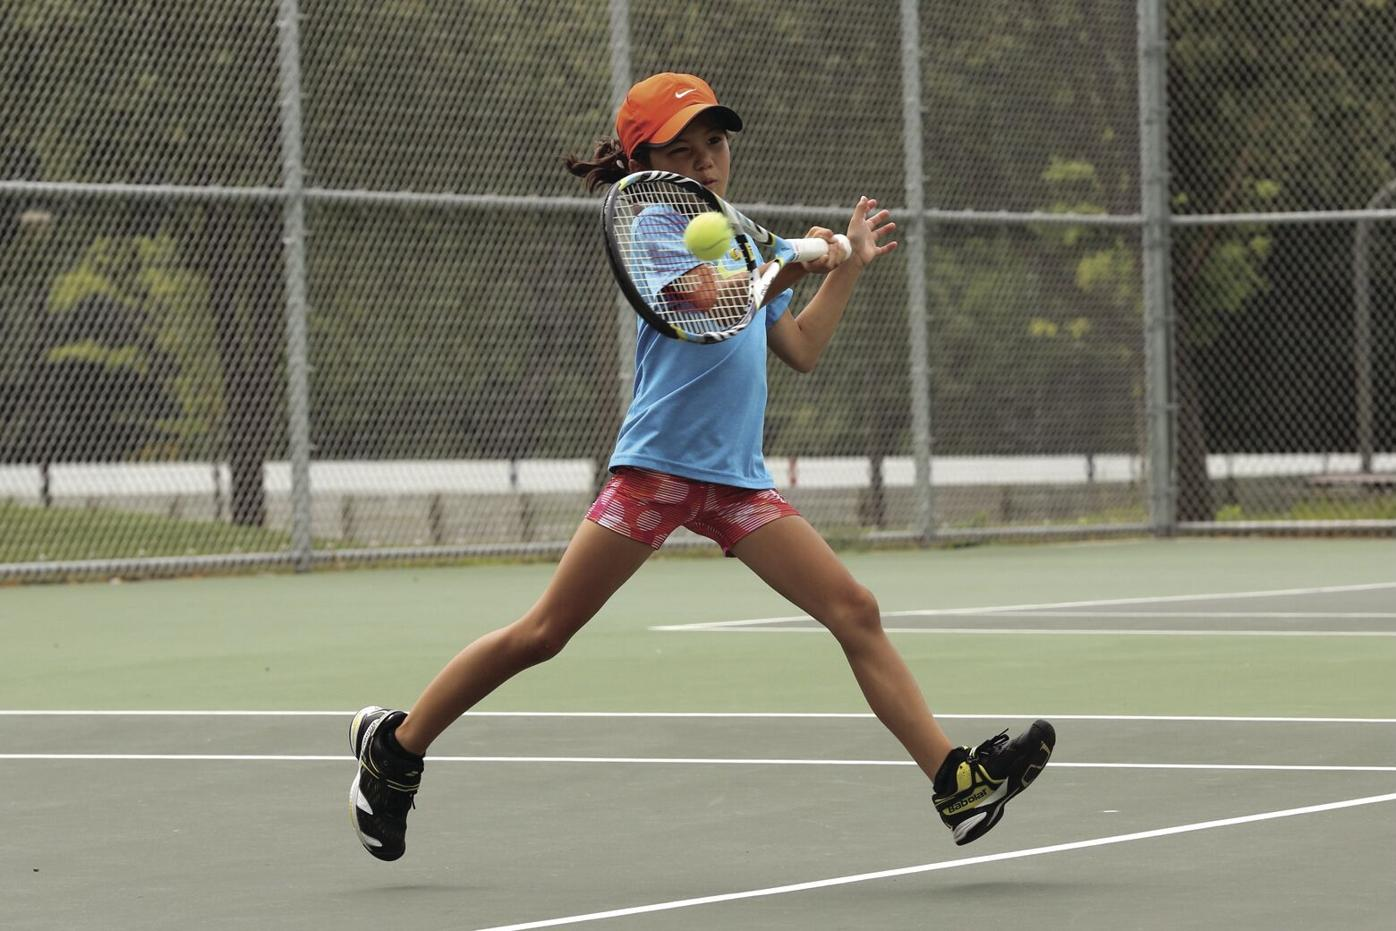 Serving success on the court: Maple Grove senior reflects on stellar tennis career